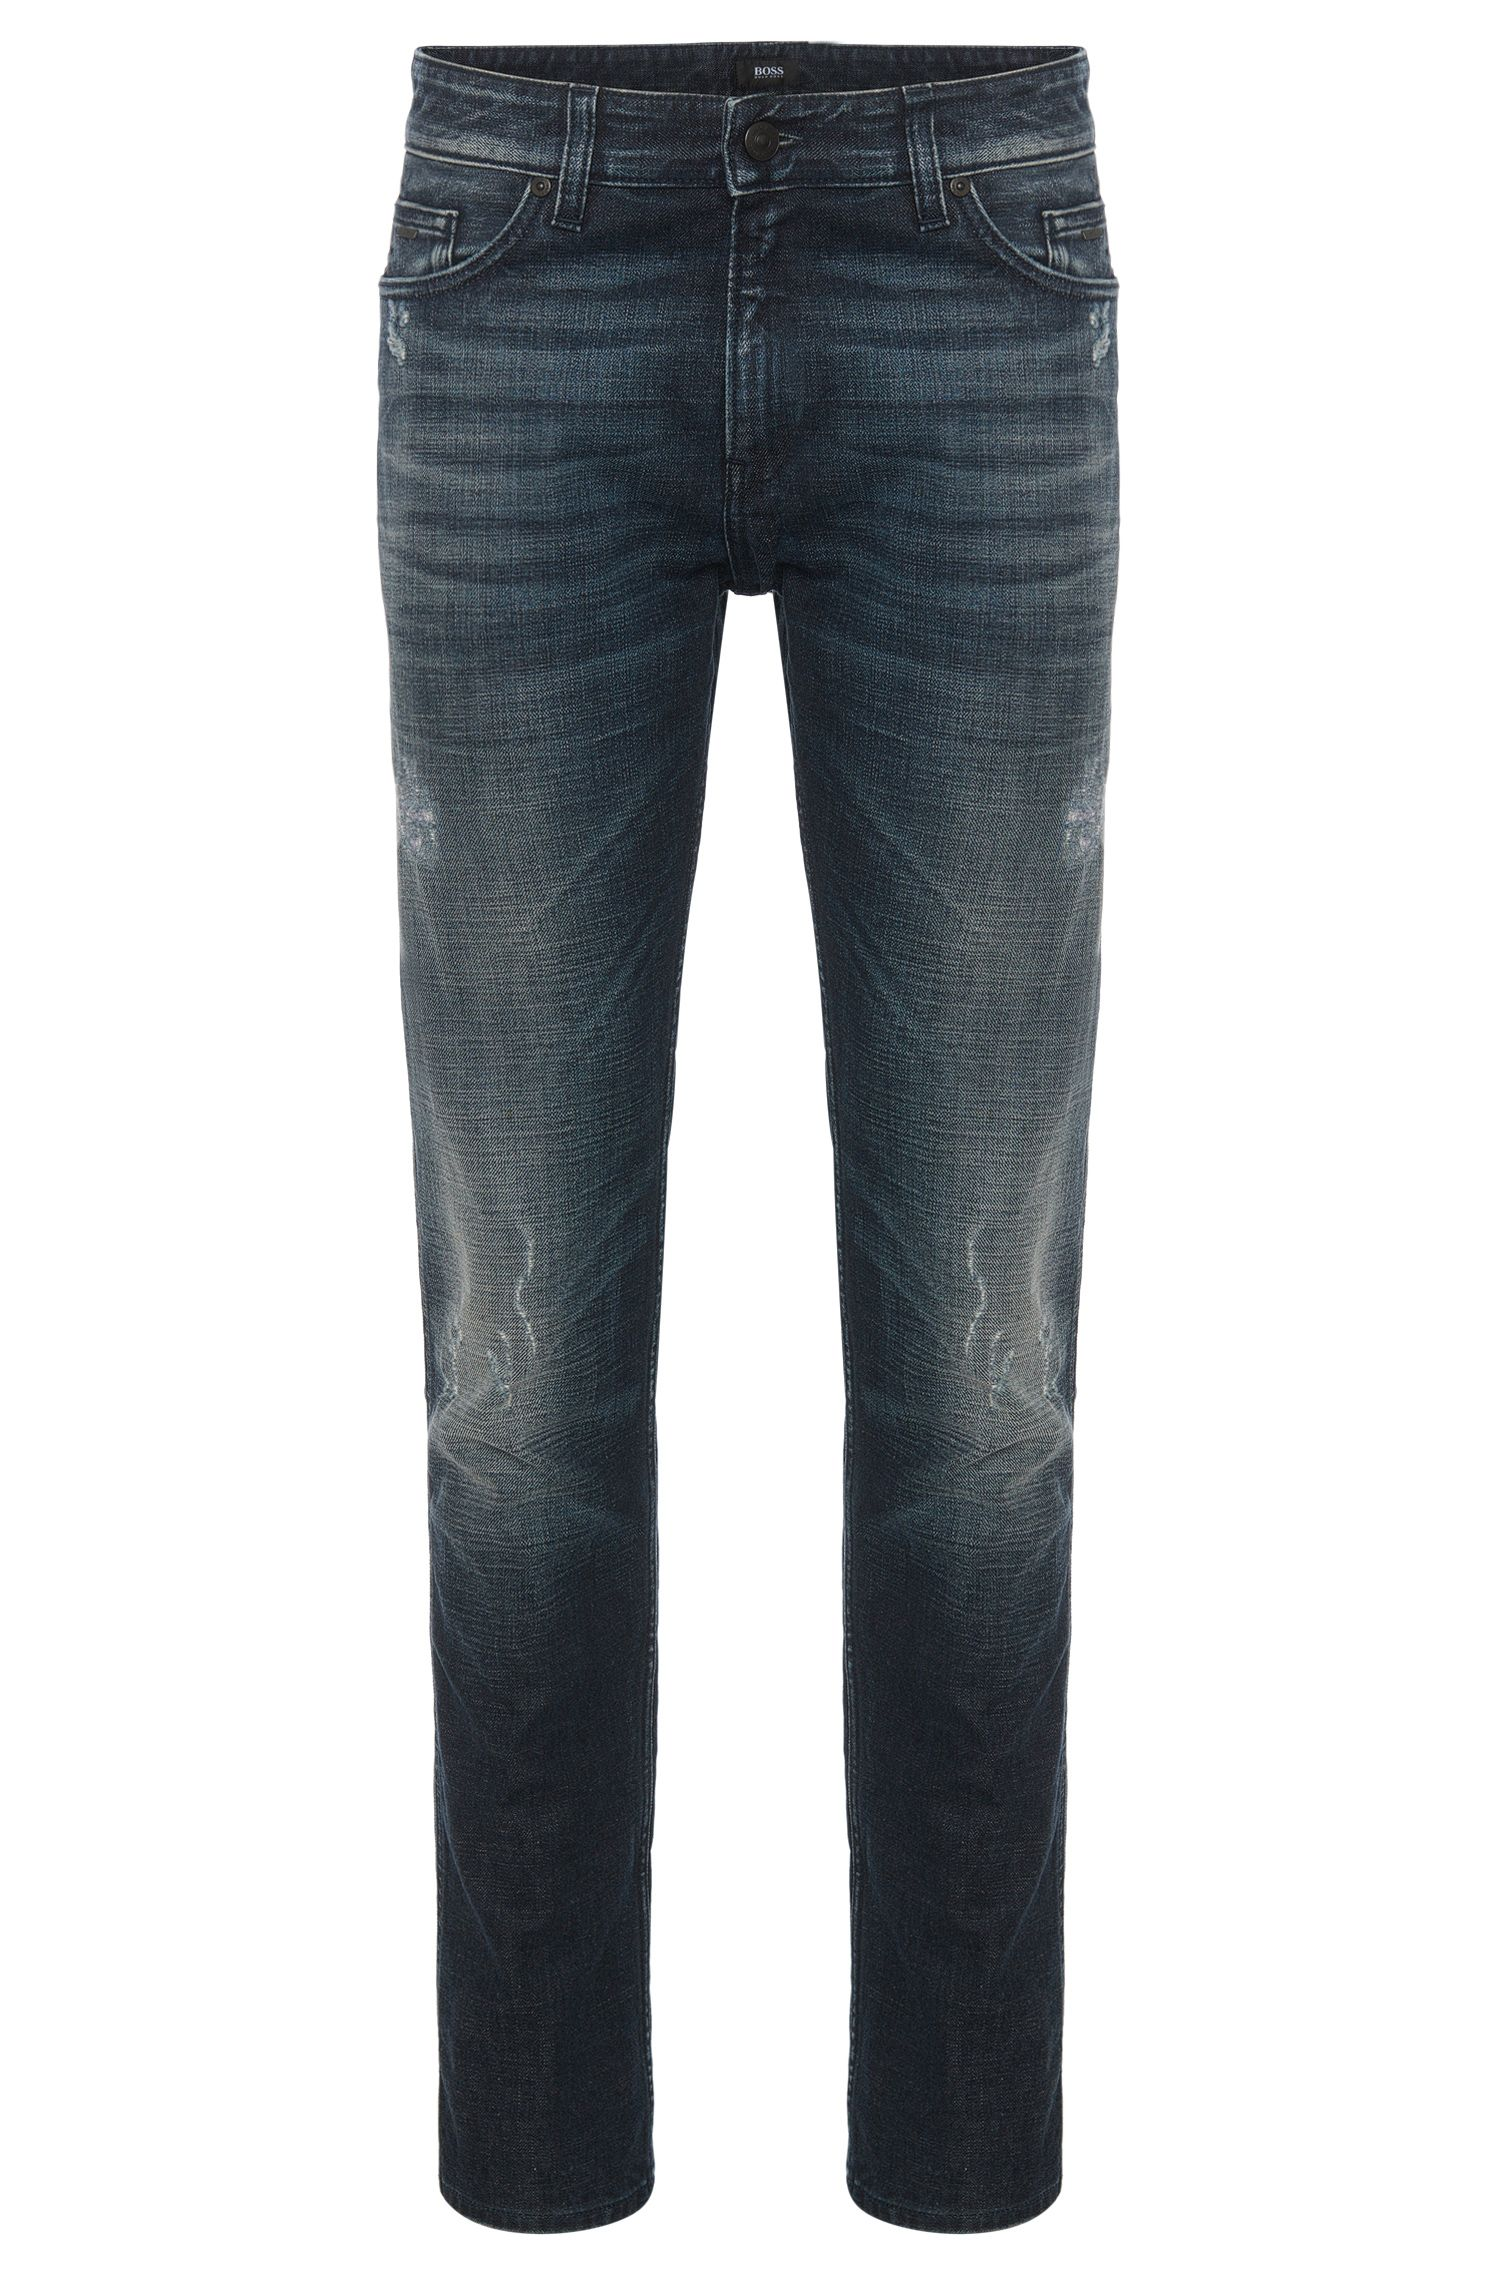 Jeans Slim Fit en coton stretch à l'aspect usé : « Delaware3 »